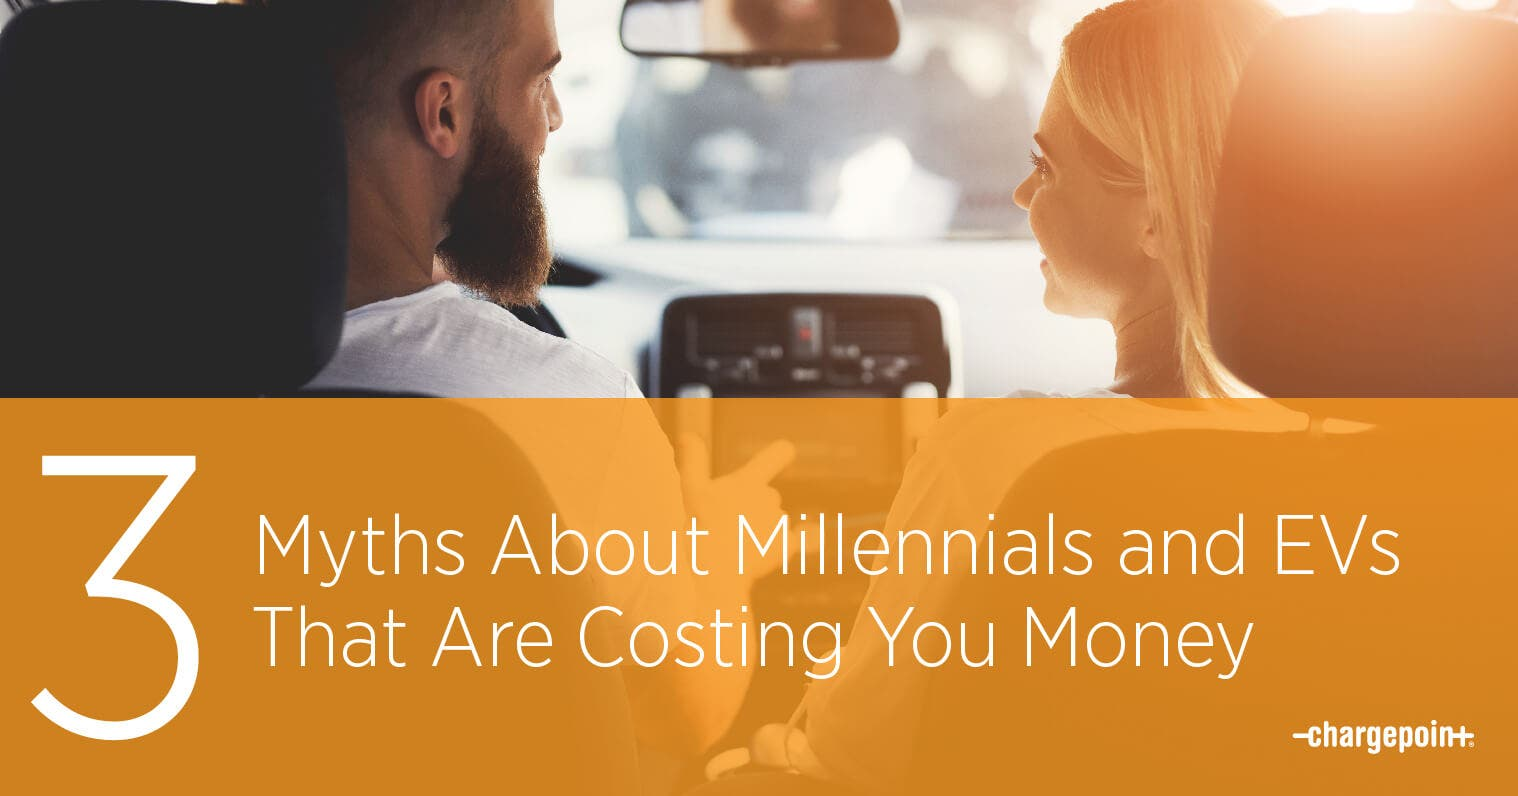 3 Myths About Millennials & Electric Vehicles That Are Costing You Money